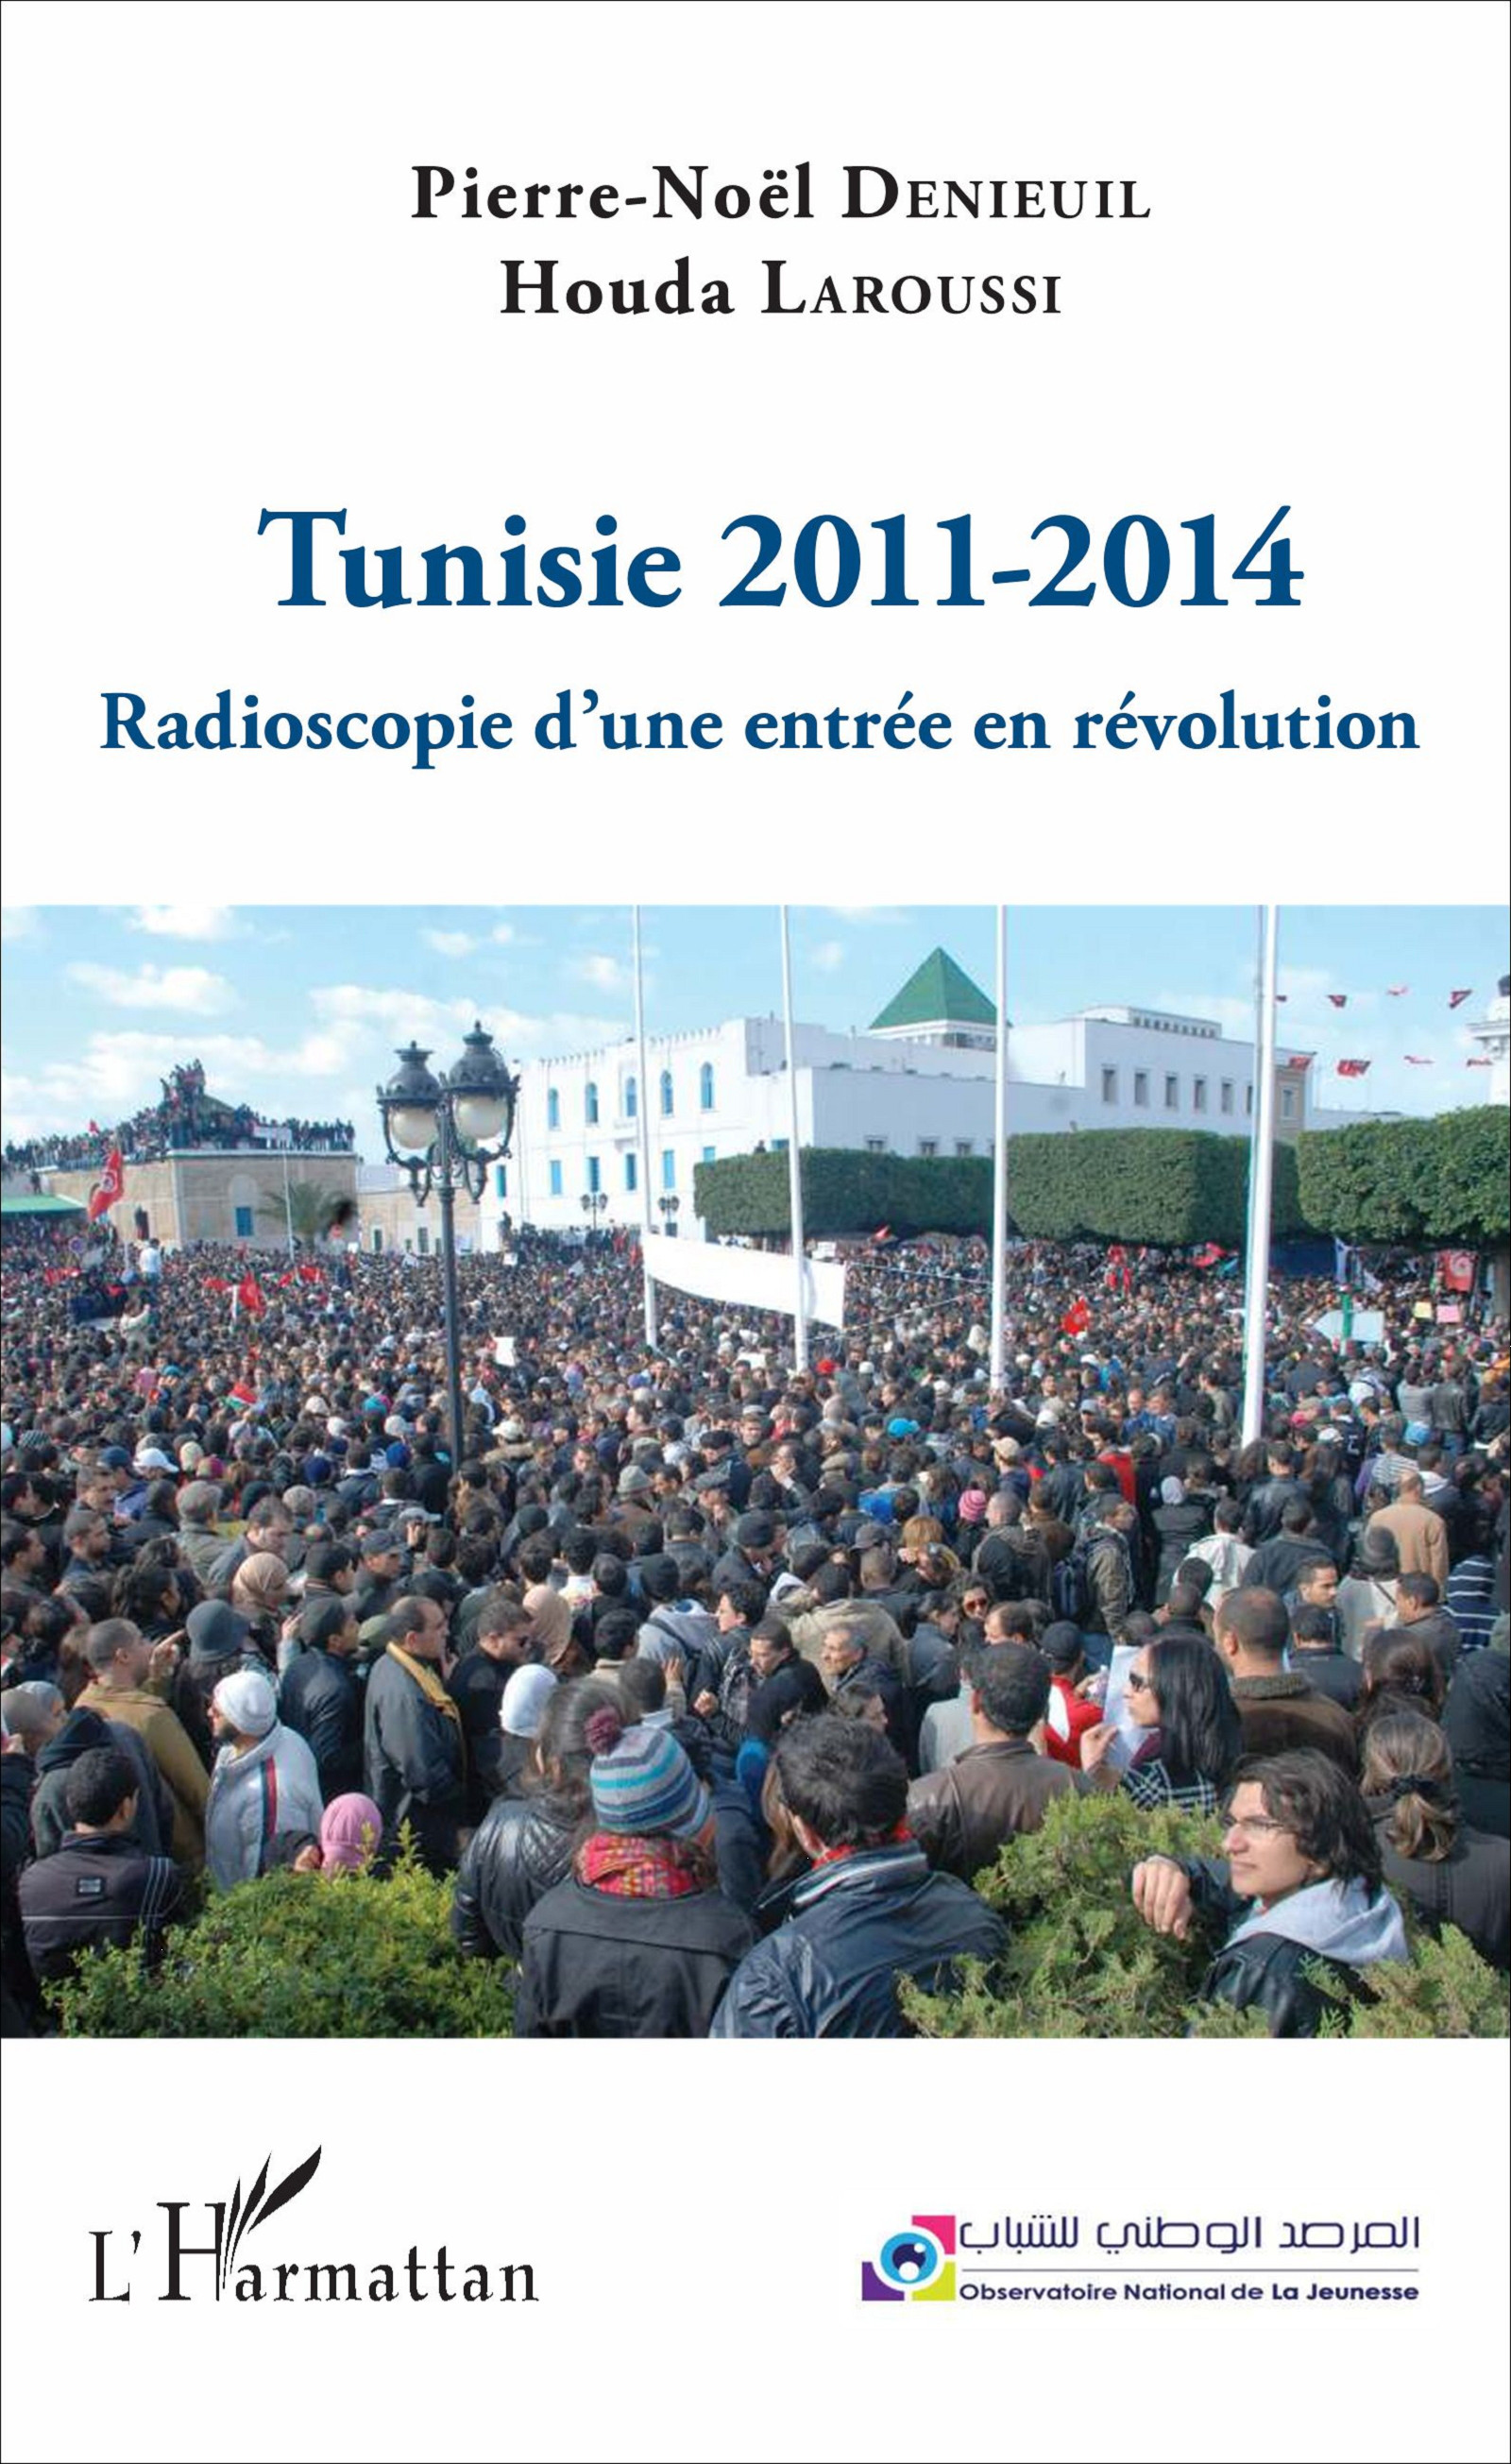 Tunisie 2011 2014 houda laroussi pierre no l denieuil for Inter meuble tunisie catalogue 2011